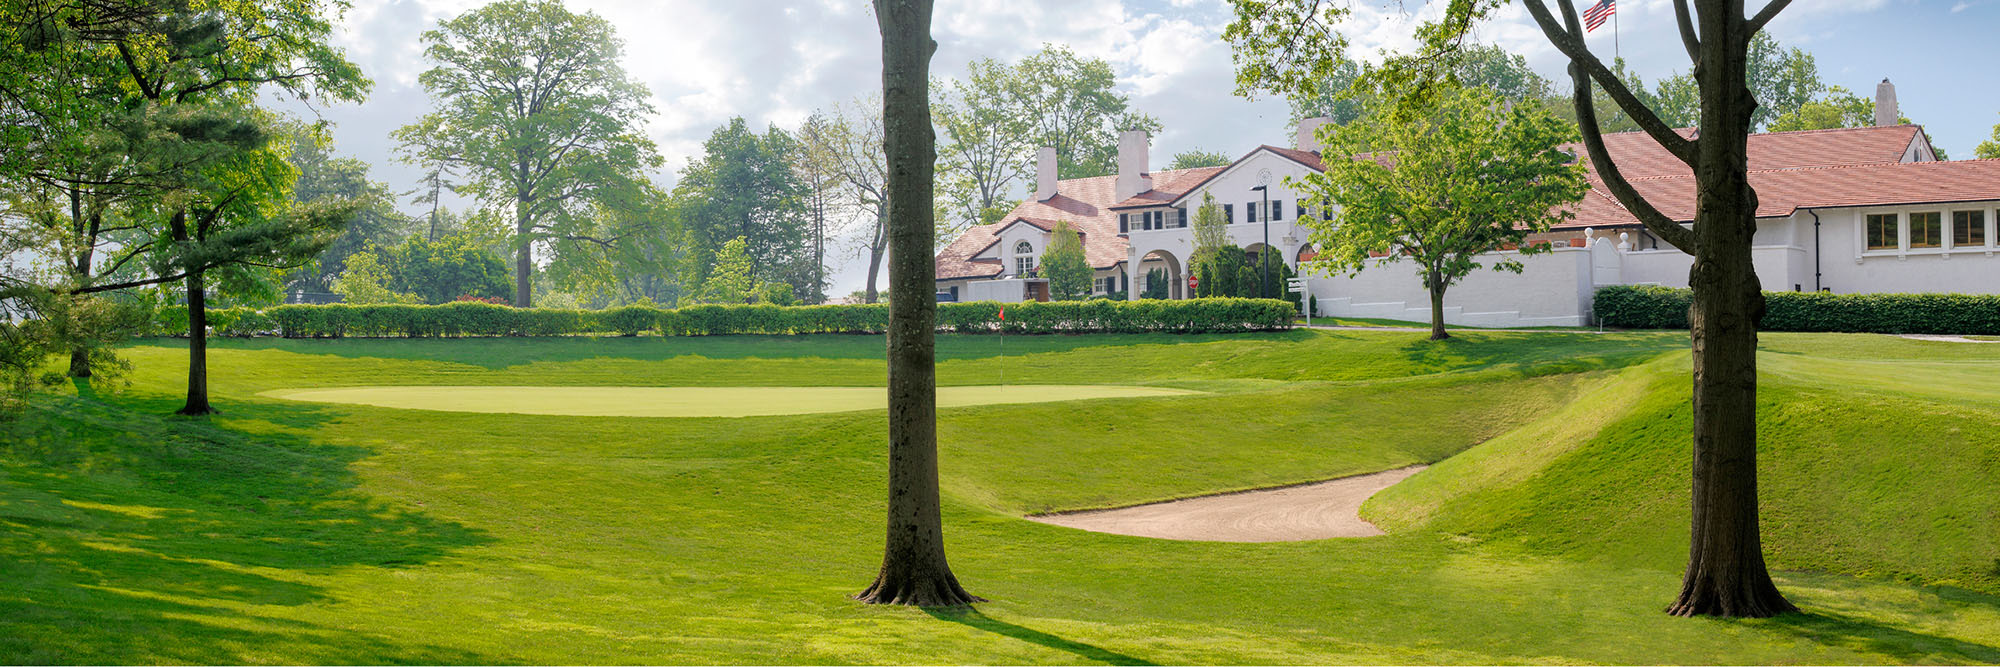 Golf Course Image - St. Louis Country Club No. 18